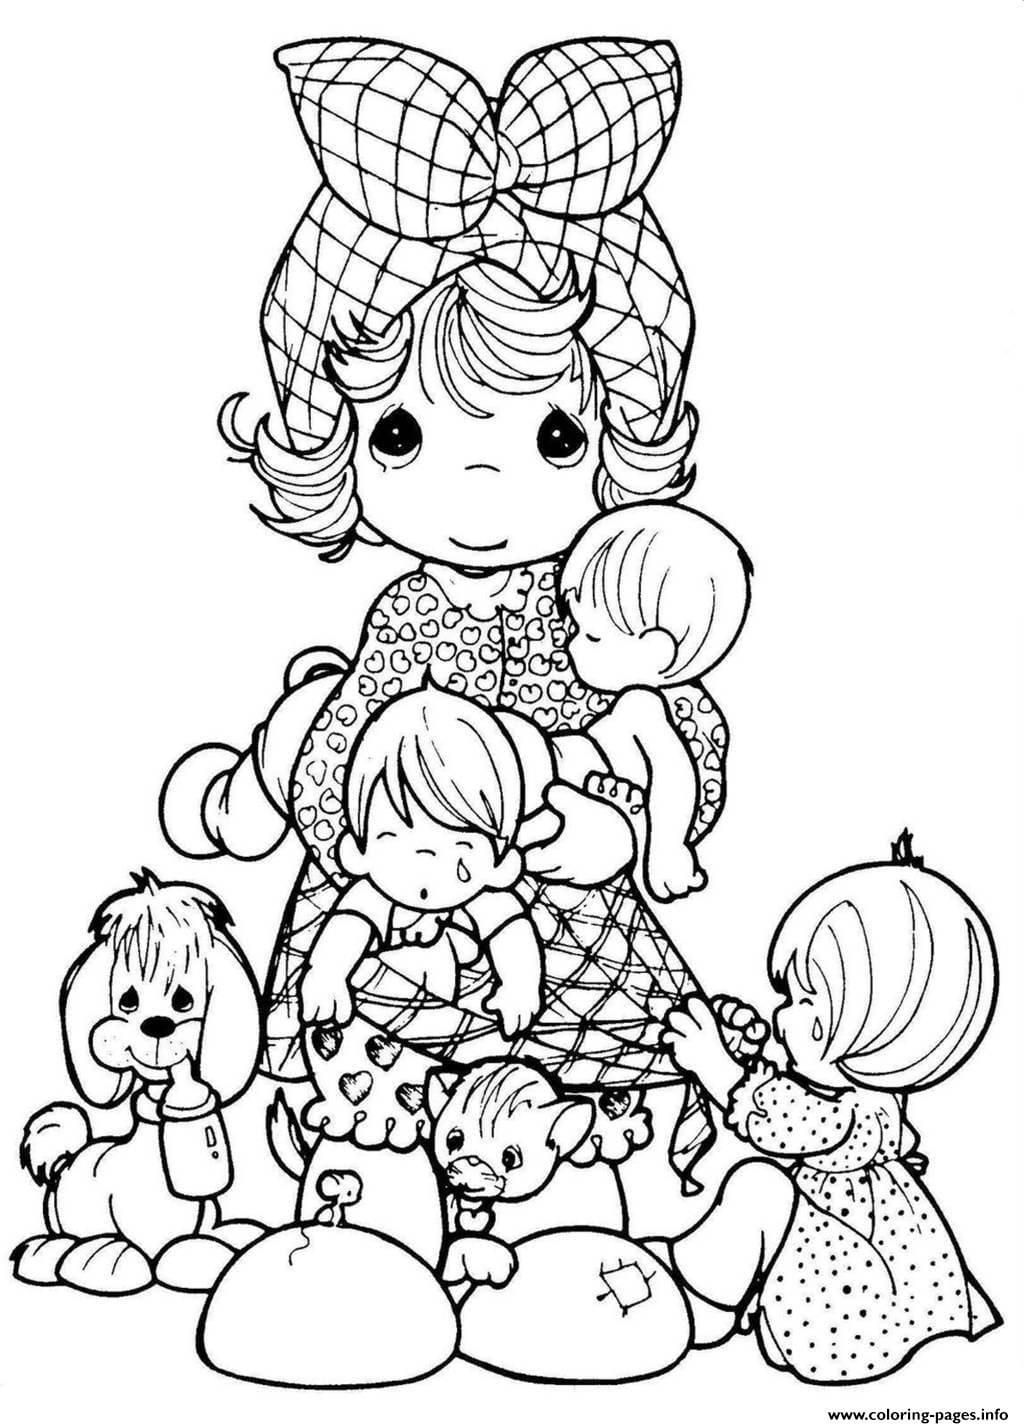 Precious Moments Family Coloring Pages